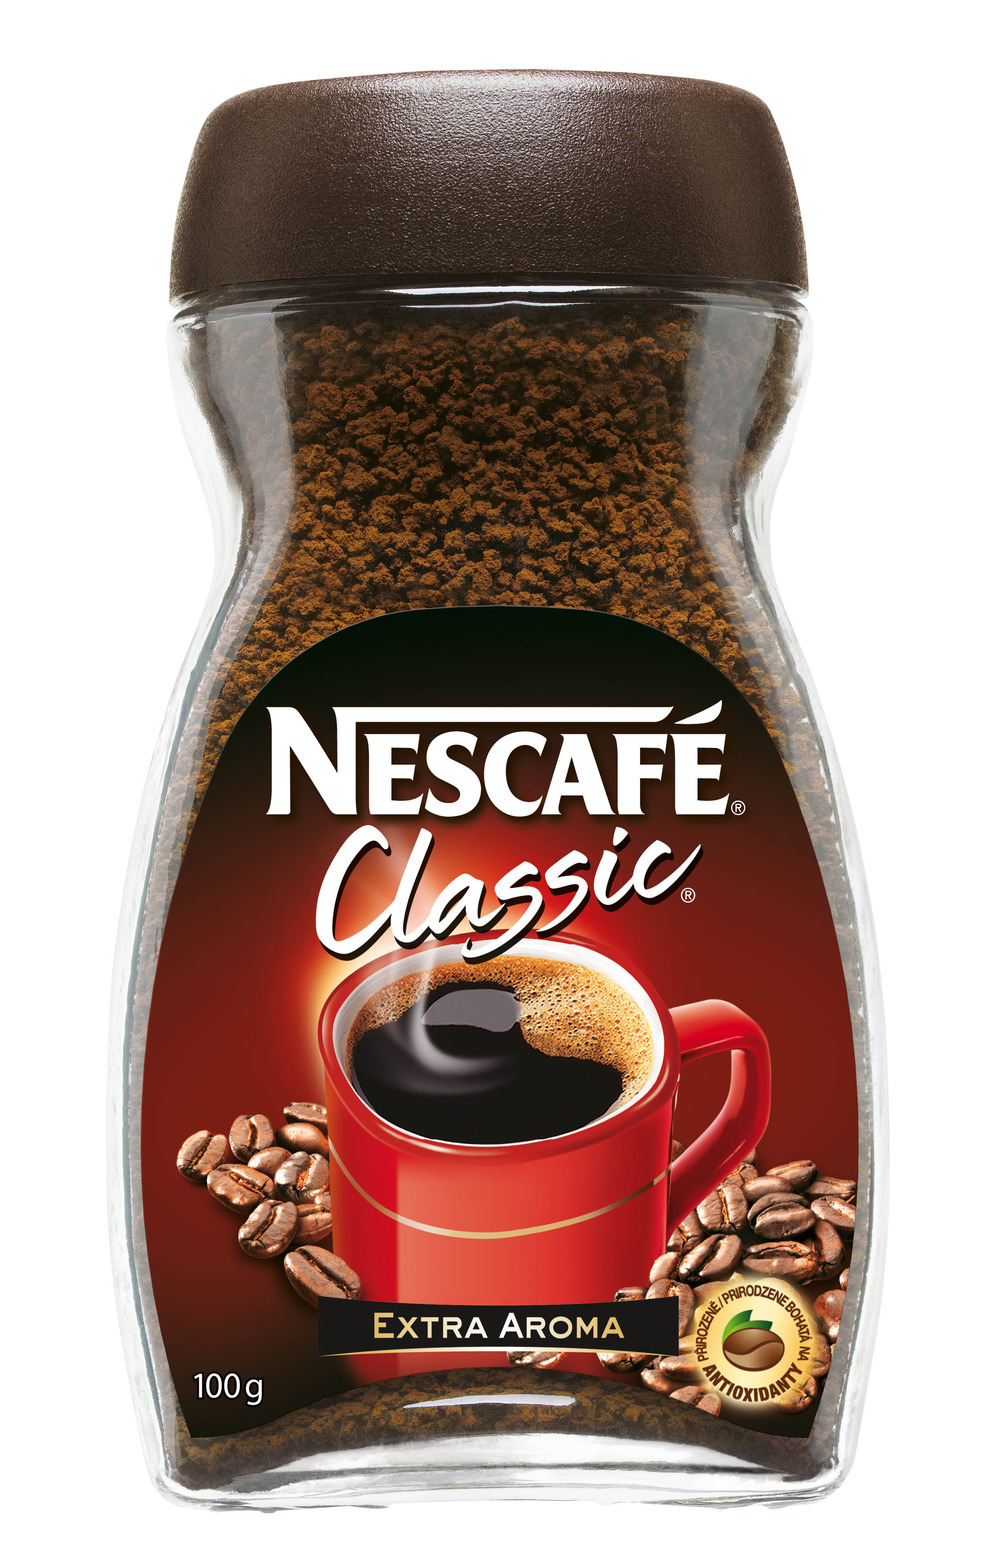 What is nescafe